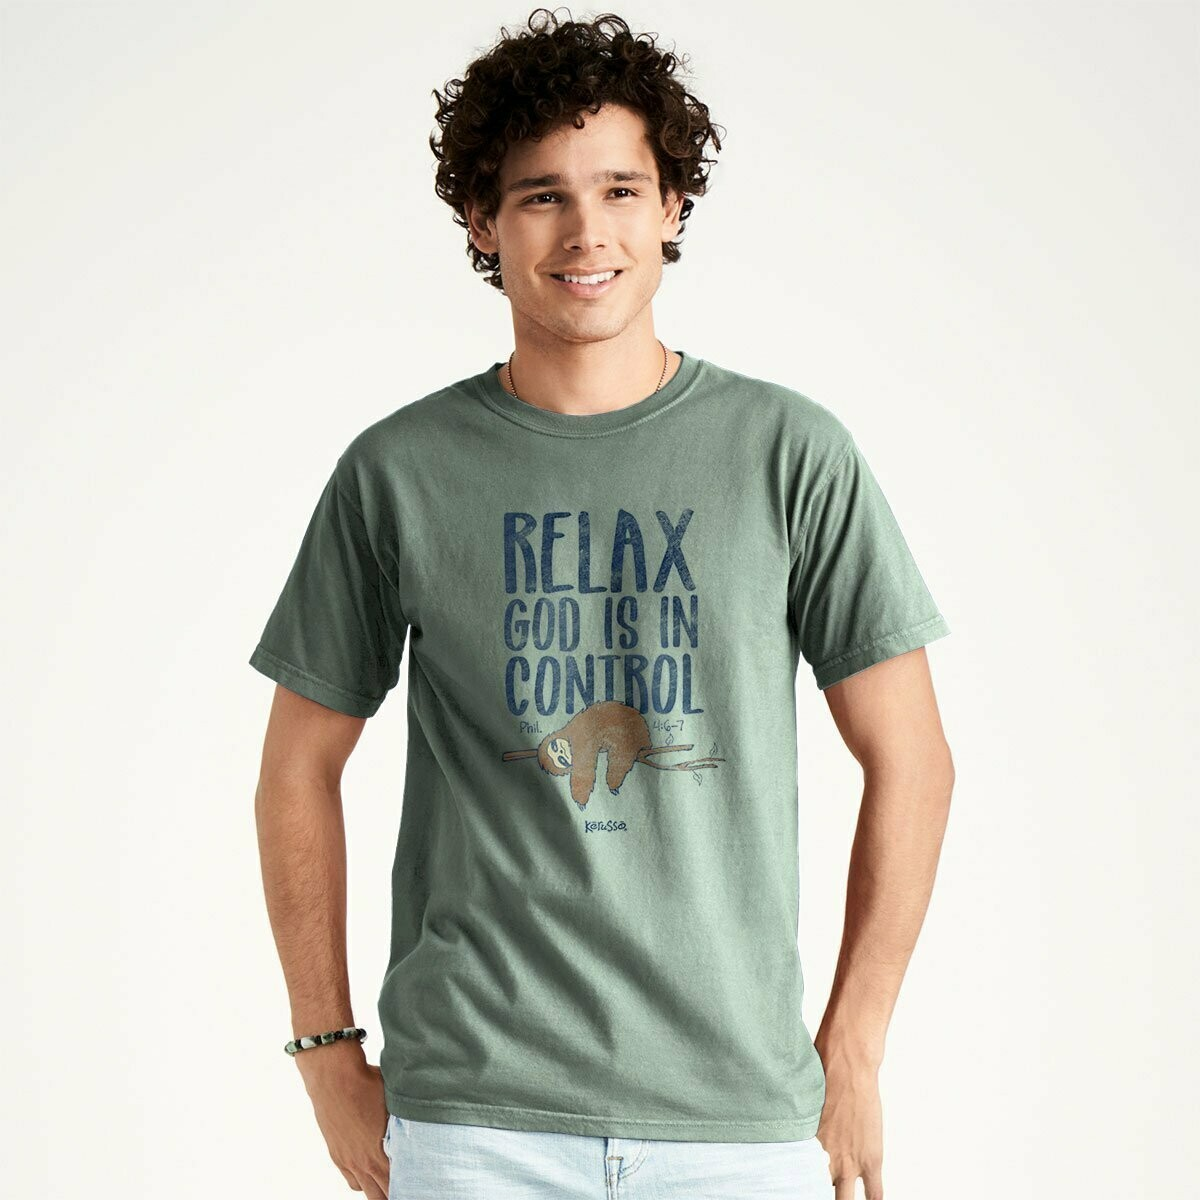 Relax Adult T-Shirt - FREE Shipping